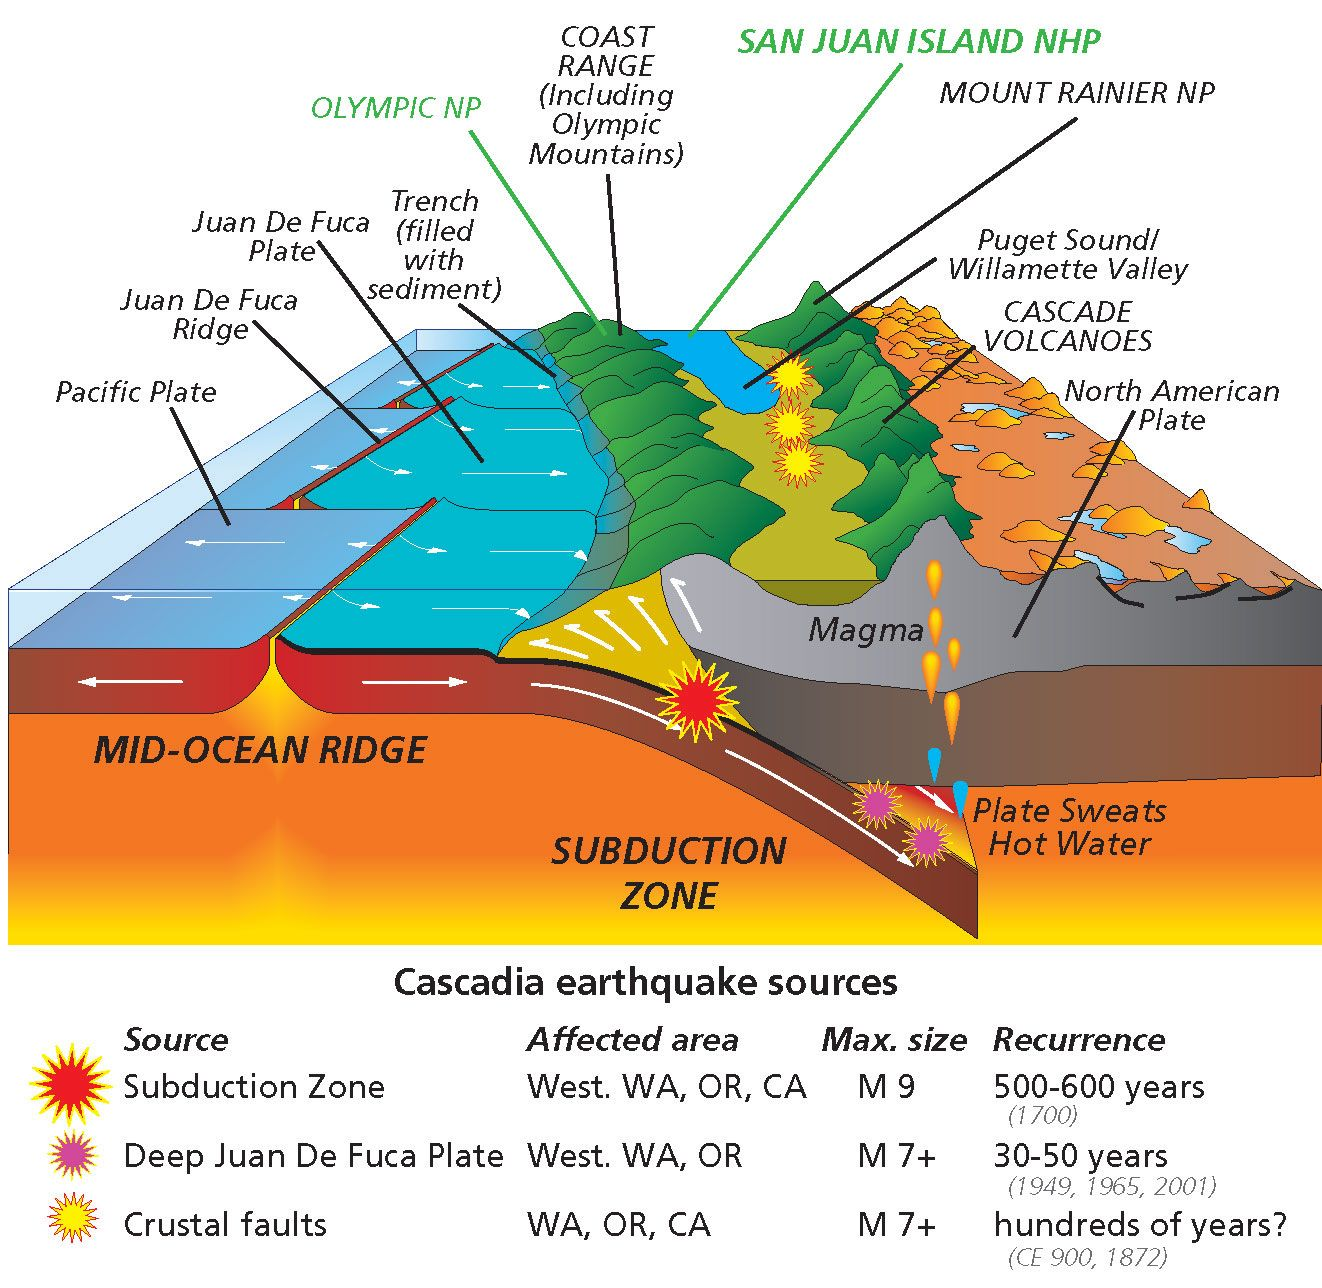 Why Have Volcanoes In The Cascades Been So Quiet Lately Active - West coast fault lines